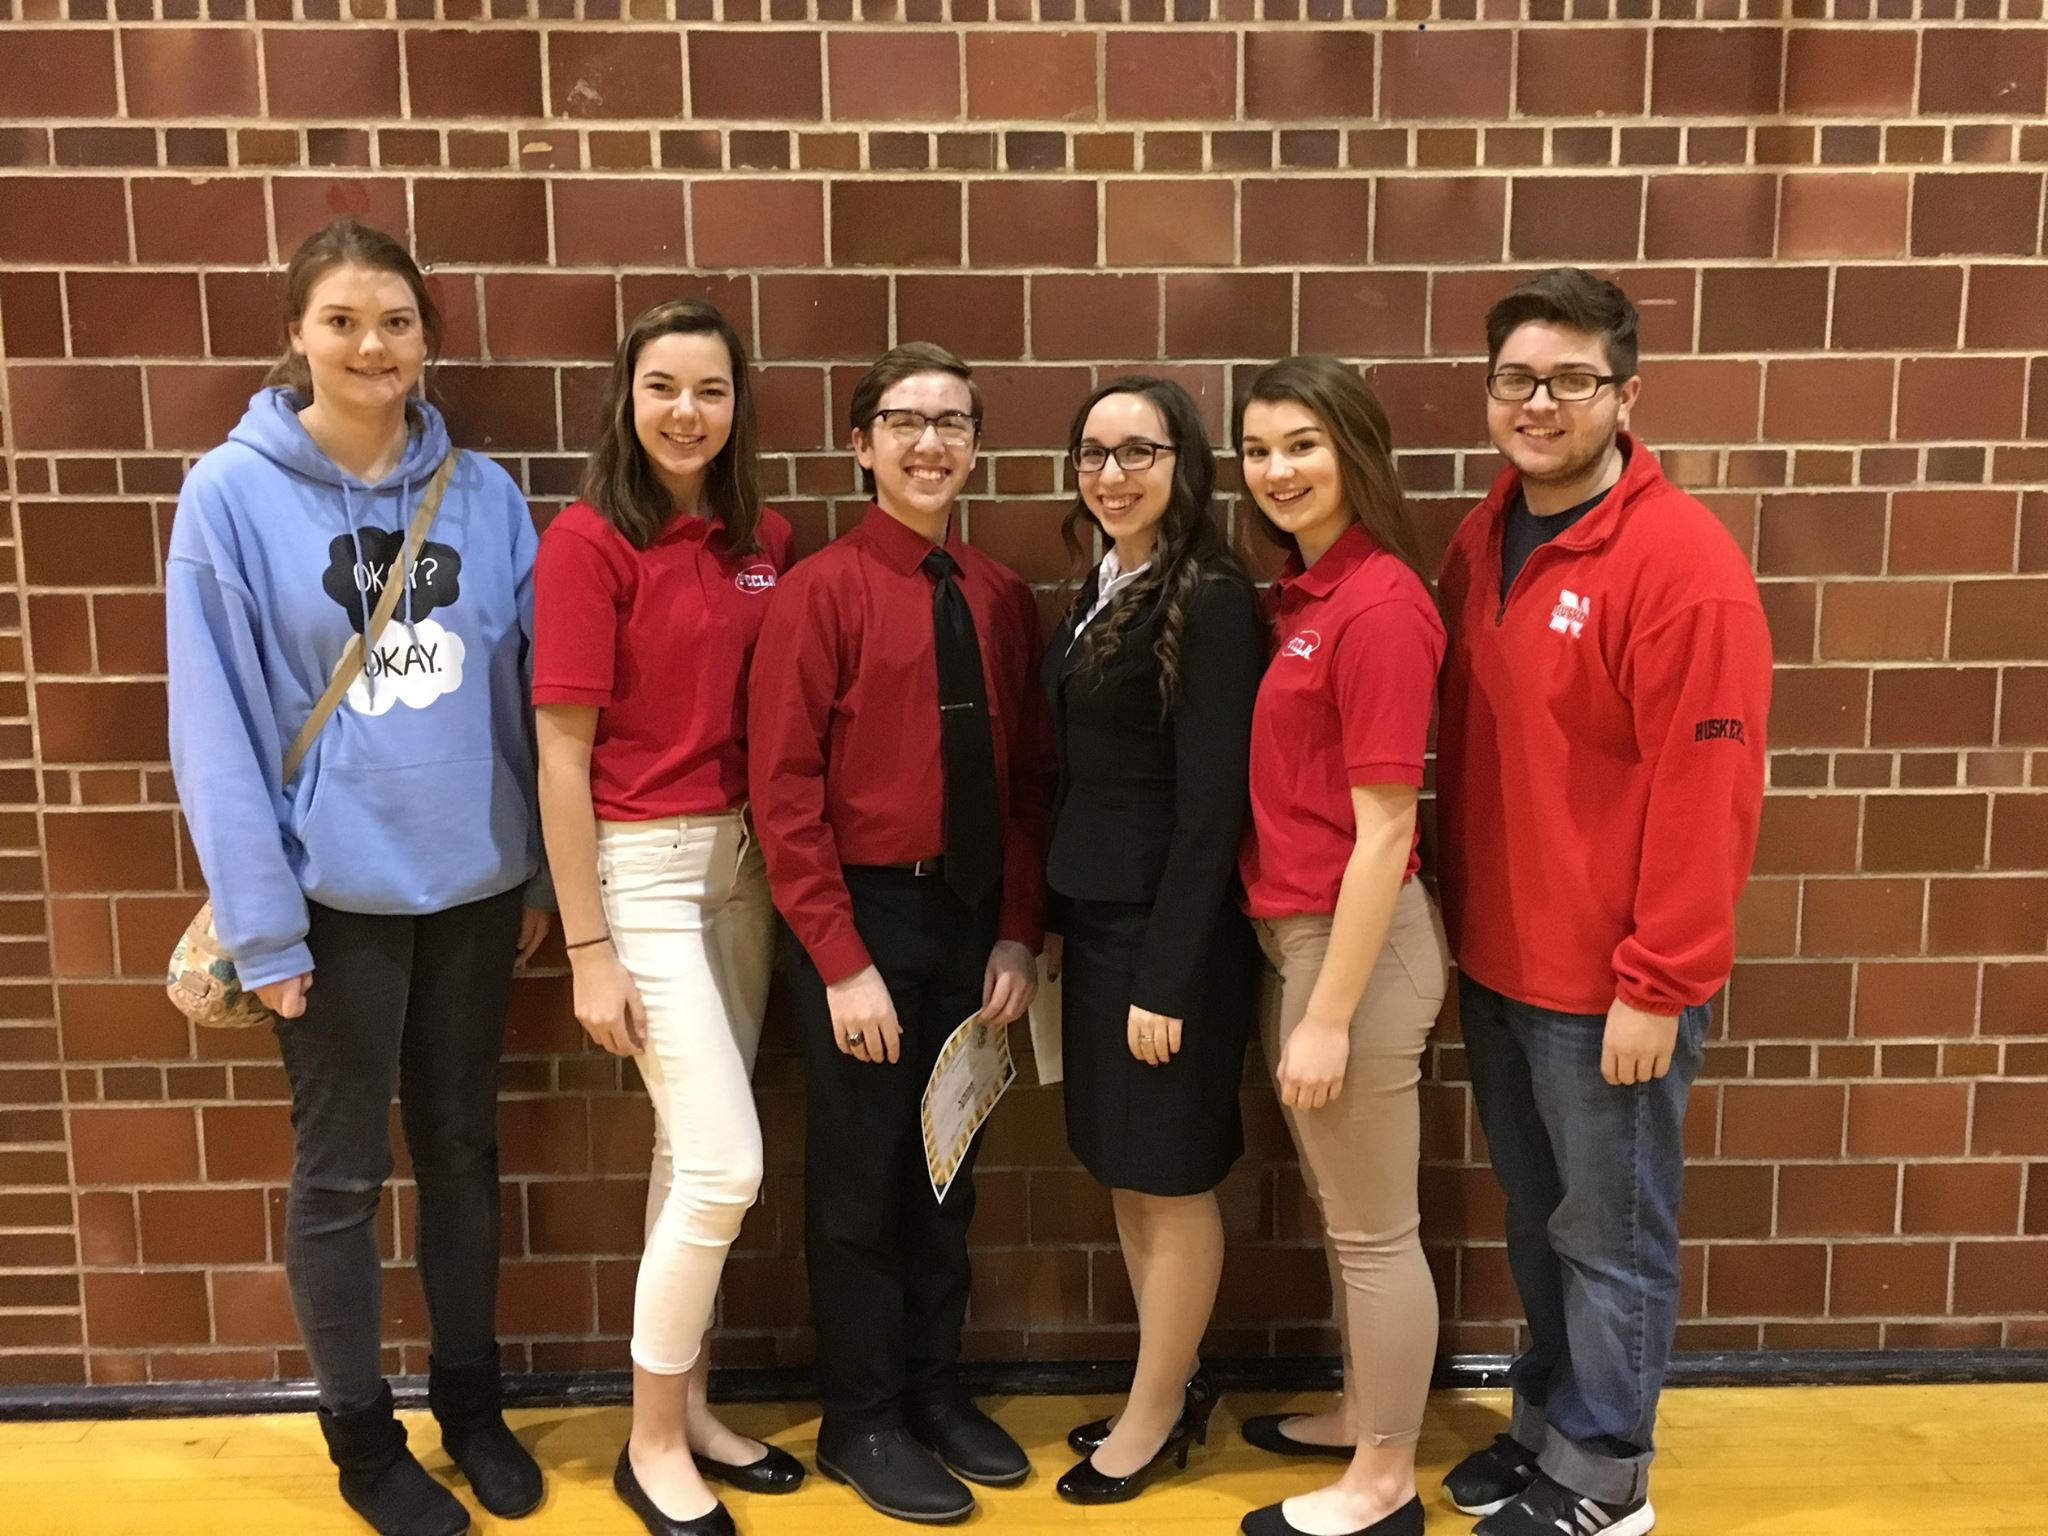 Photo of 6 of the members of the FCCLA group.